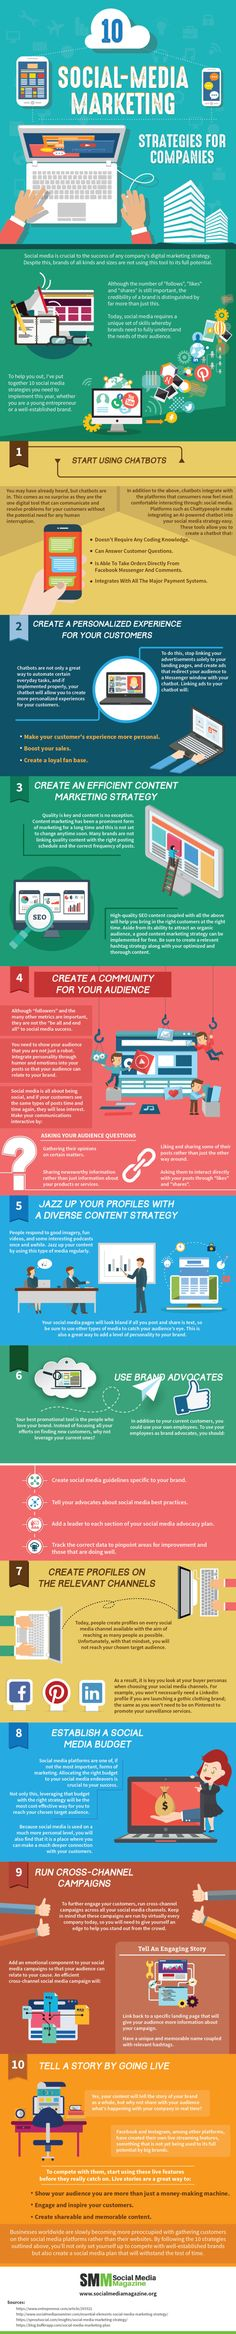 10 Social Media Marketing Strategies for Companies [Infographic]